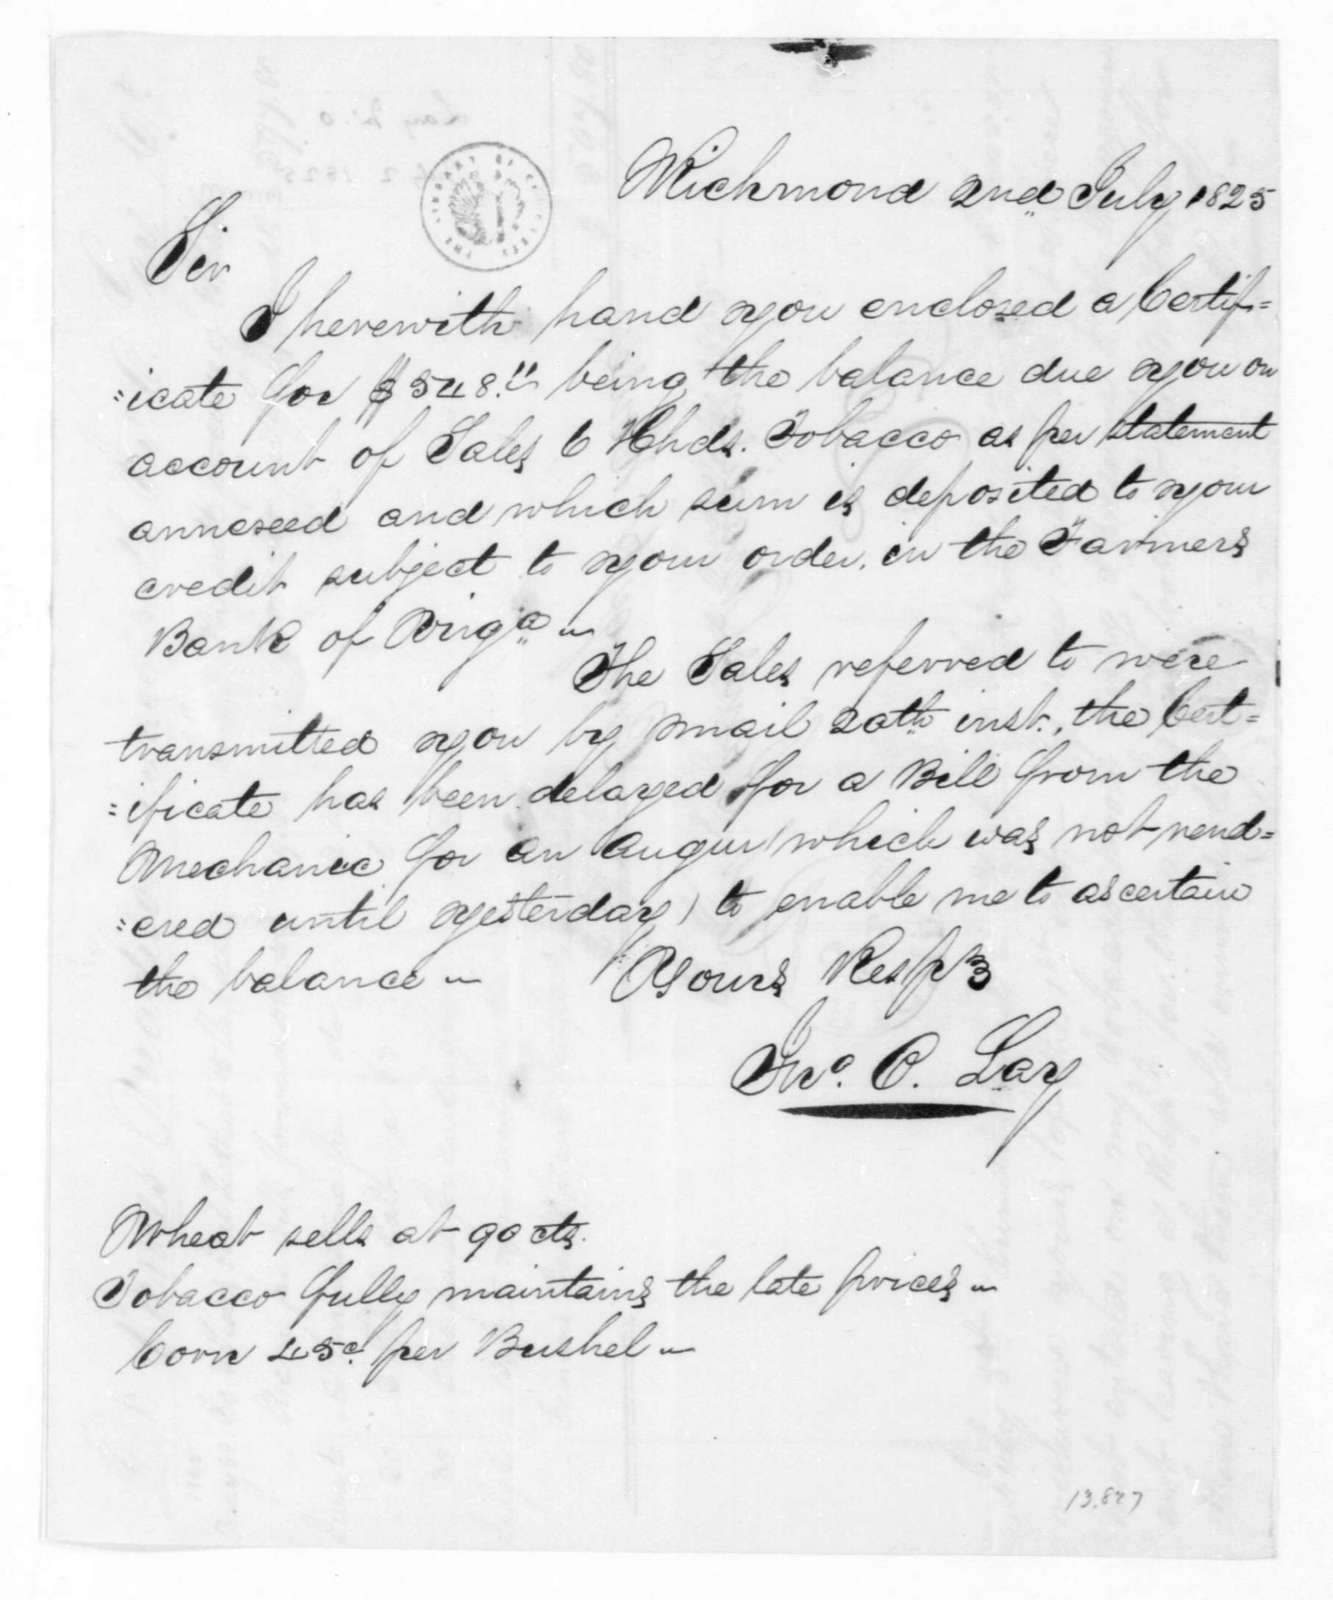 John O. Lay to James Madison, July 2, 1825. Includes account of tobacco sales.